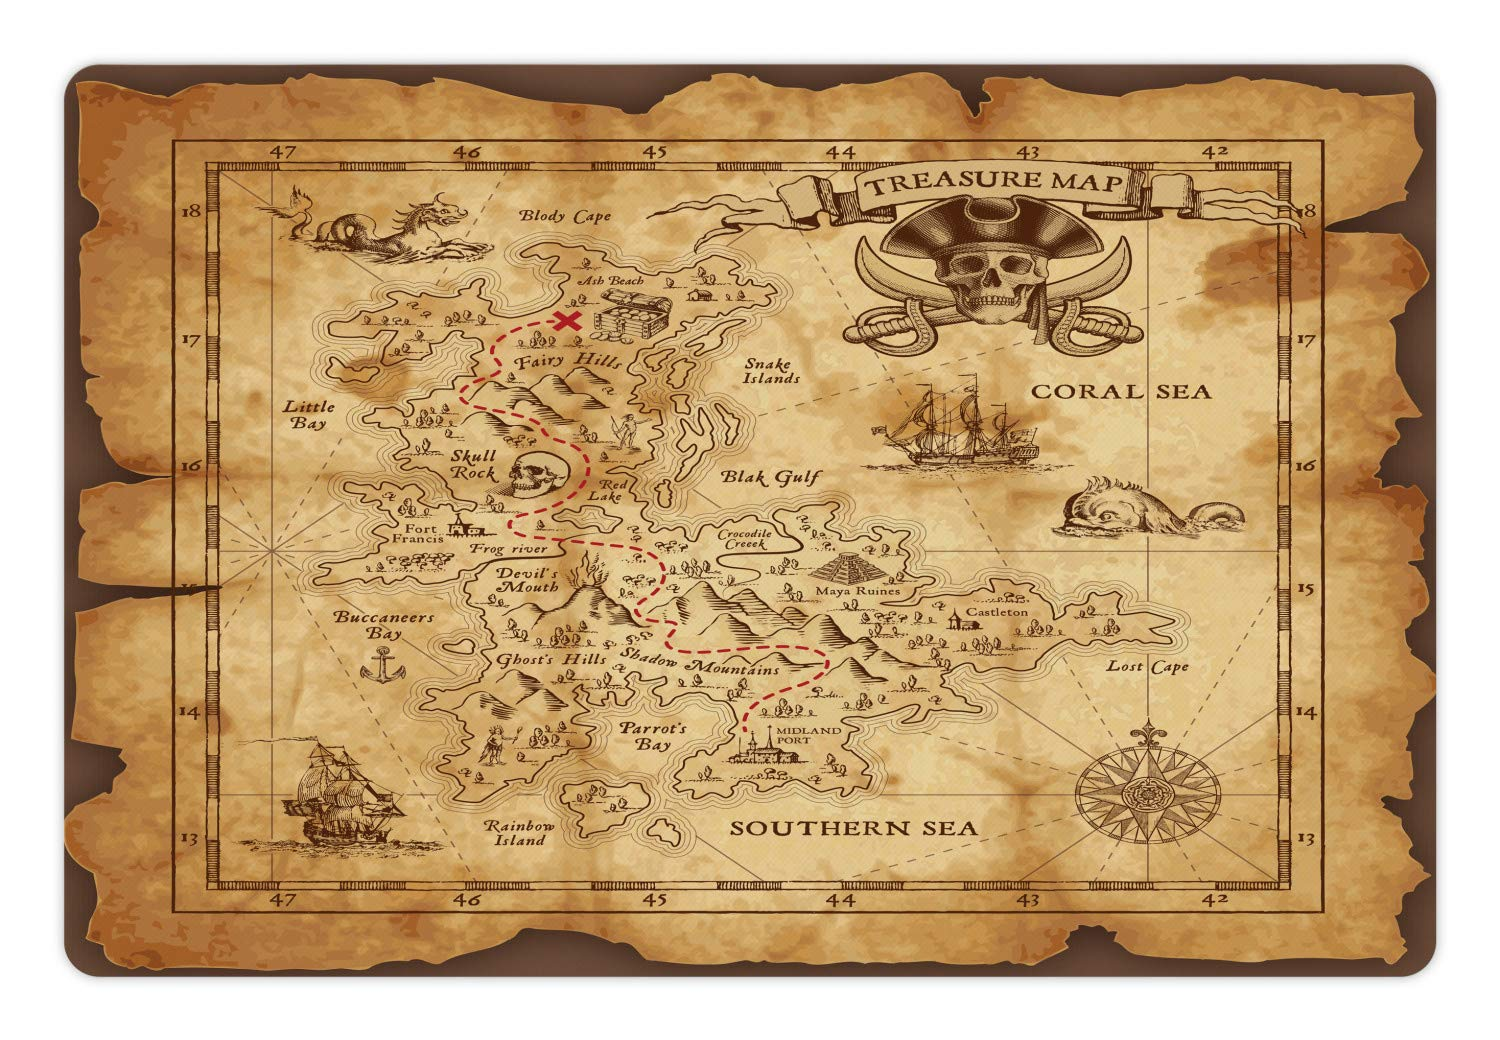 Multi 6 18\ Multi 6 18\ Ambesonne Island Map Pet Mat for Food and Water, Super Detailed Treasure Map Grungy Rustic Pirates gold Secret Sea History Theme, Rectangle Non-Slip Rubber Mat for Dogs and Cats, Beige Brown